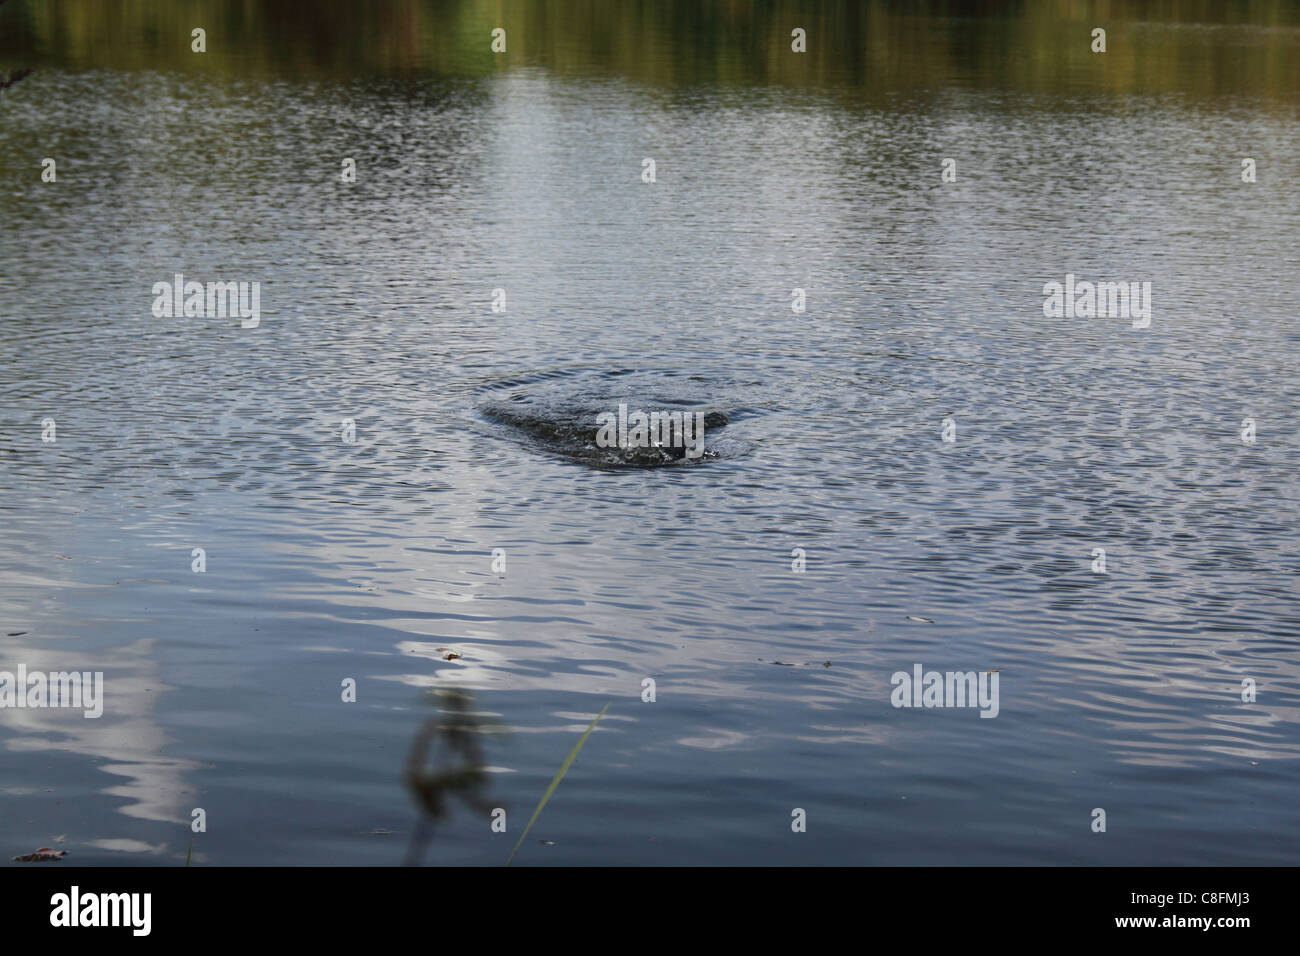 Moorhen just dived under the water, rippling the surface - Stock Image